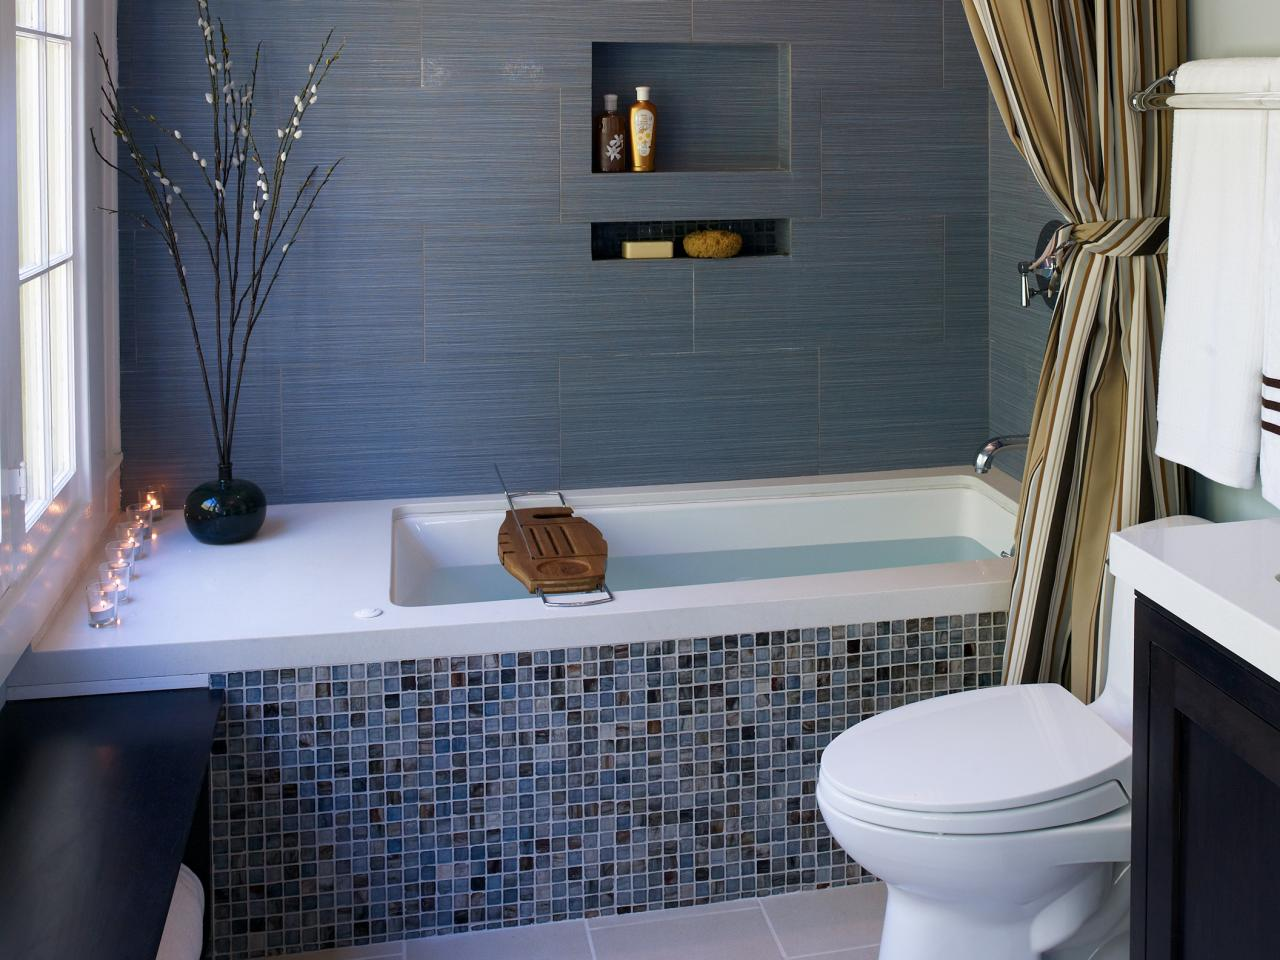 Mosaic Tile Over Bathtub - Bathtub Ideas